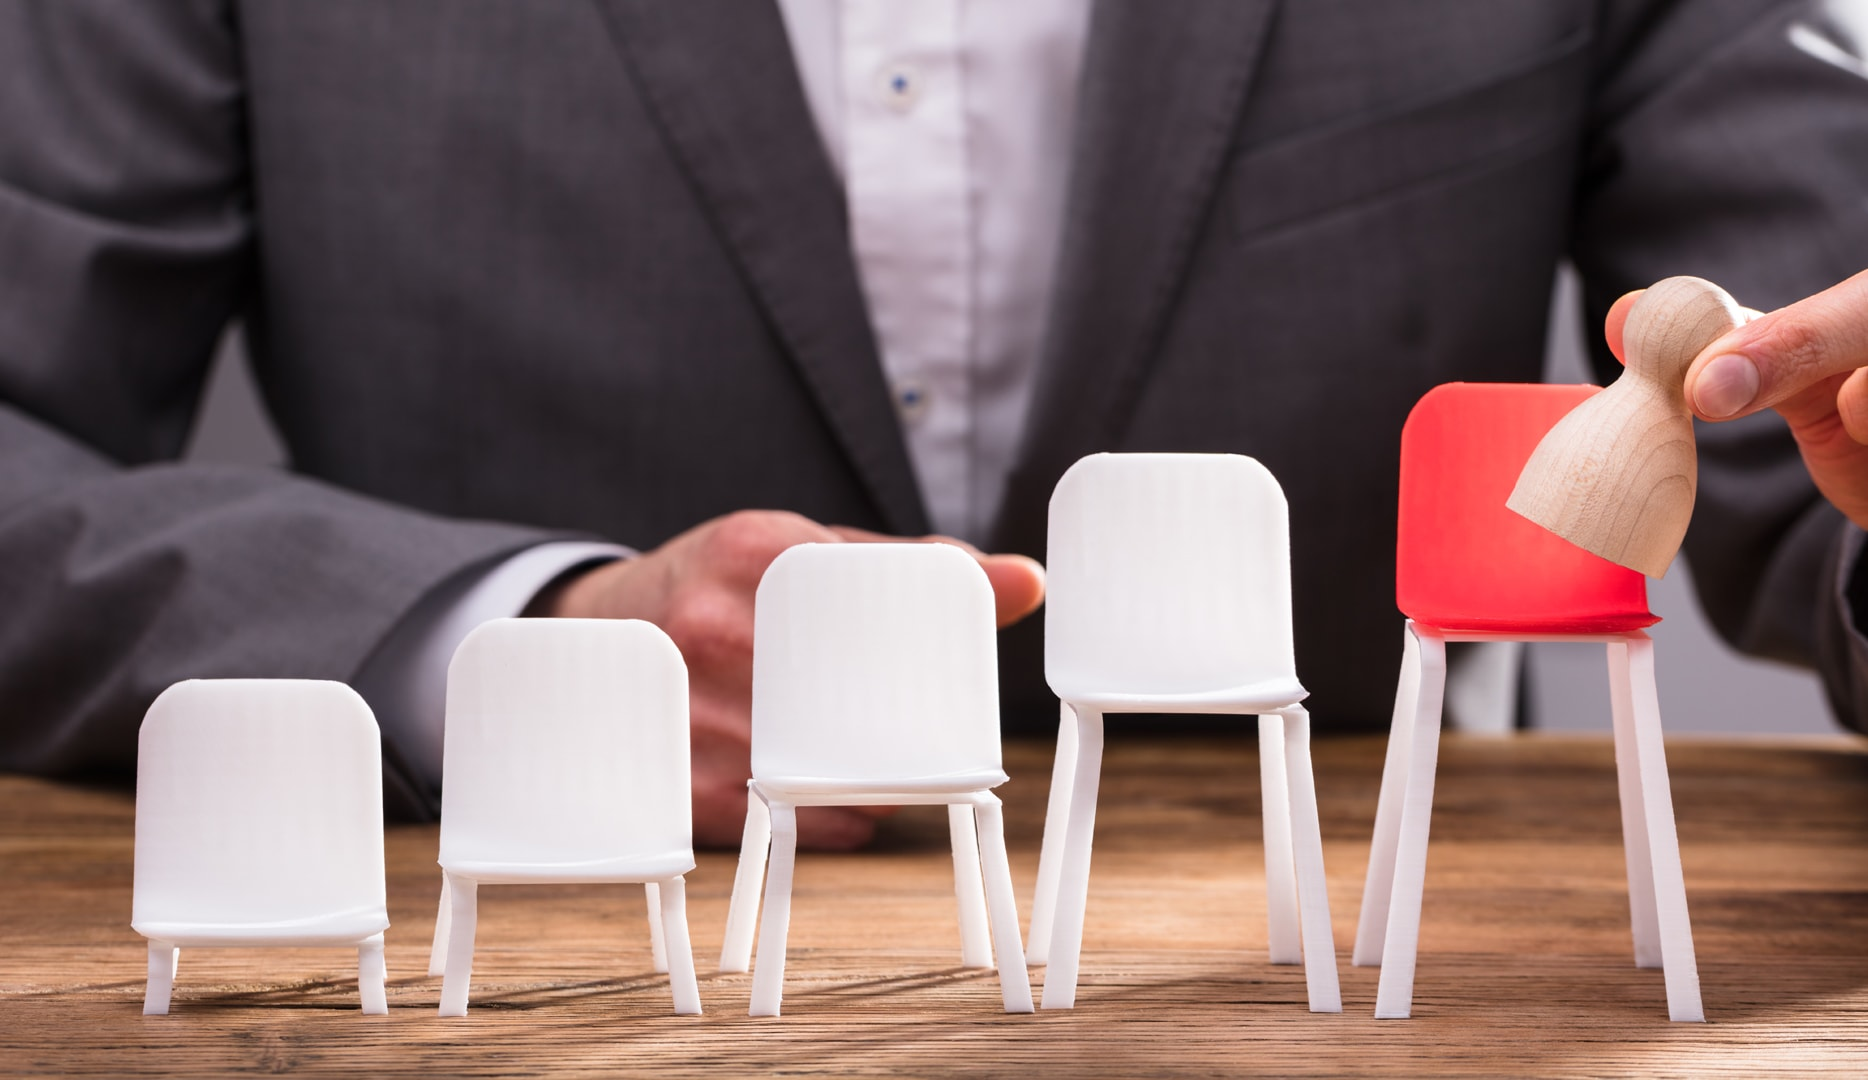 Are You Making These 8 Rookie Recruitment Mistakes?